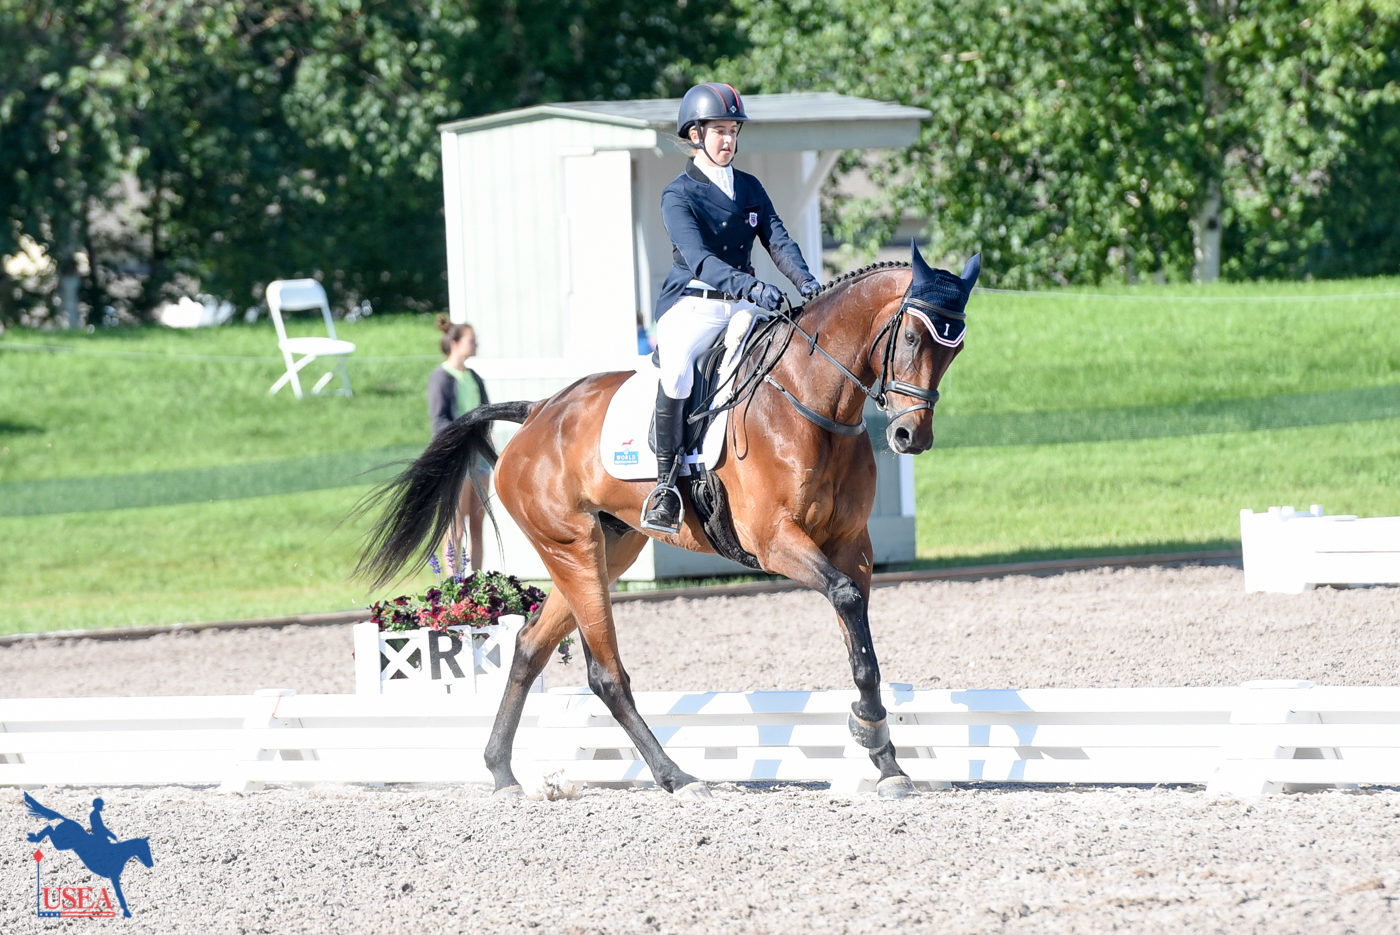 11th - Sami Crandell and Fernhill Chaos - 36.3 (Area I/II)